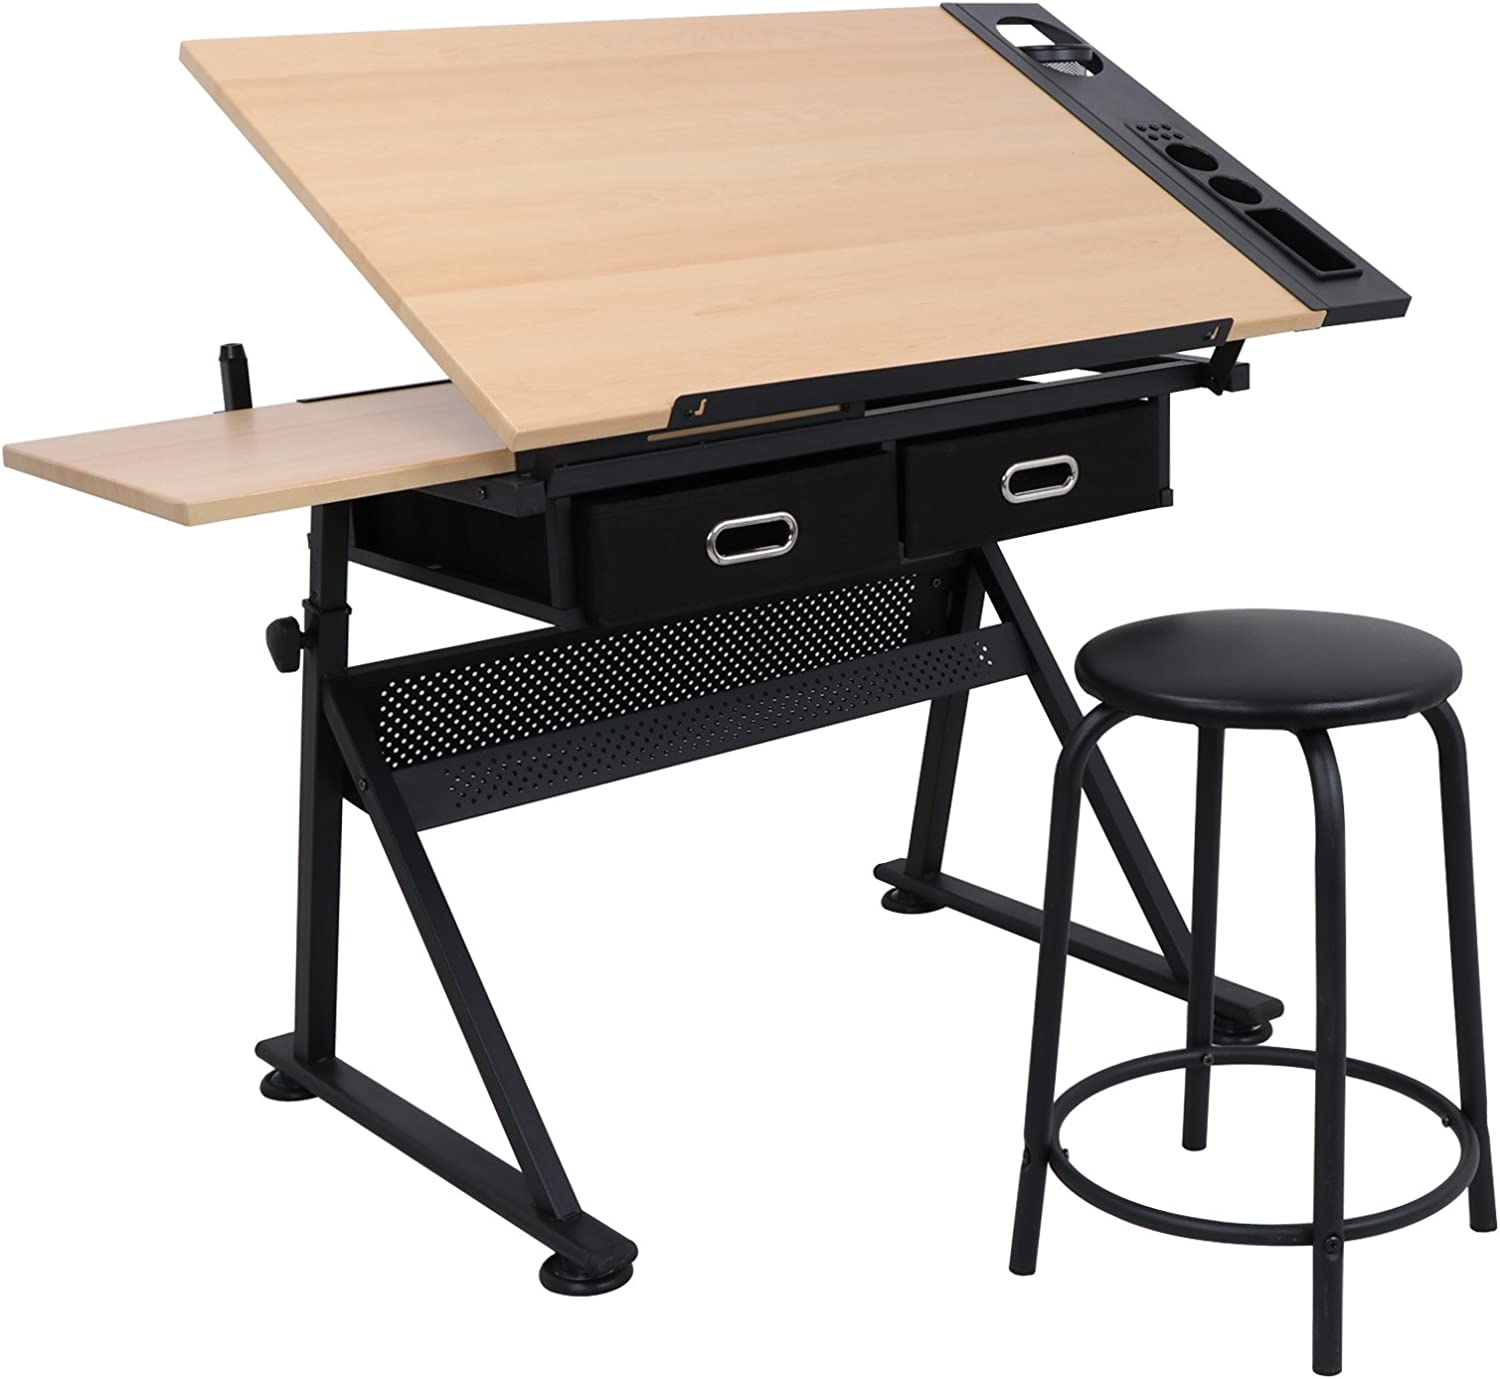 Nouva Drawing Drafting Desk Height Adjustable Artist Desk With Storage For Kid Adult Drawing Writing Studying Art Craft Work Station Kitchen Dining